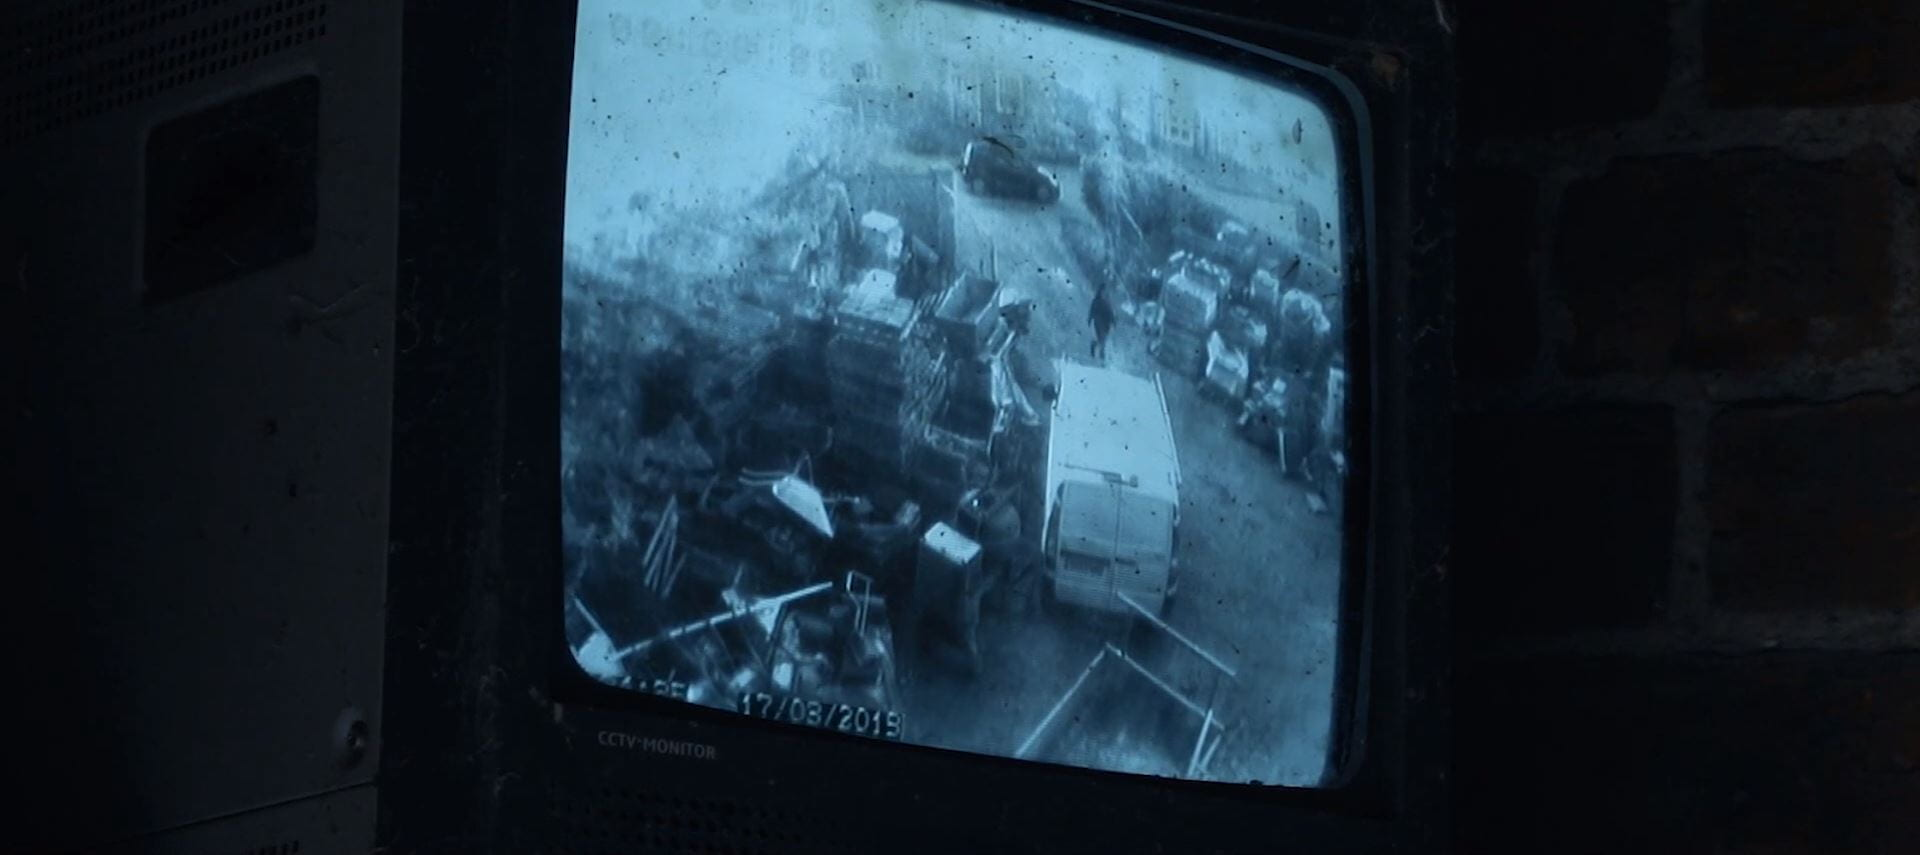 Image of a security camera TV display.